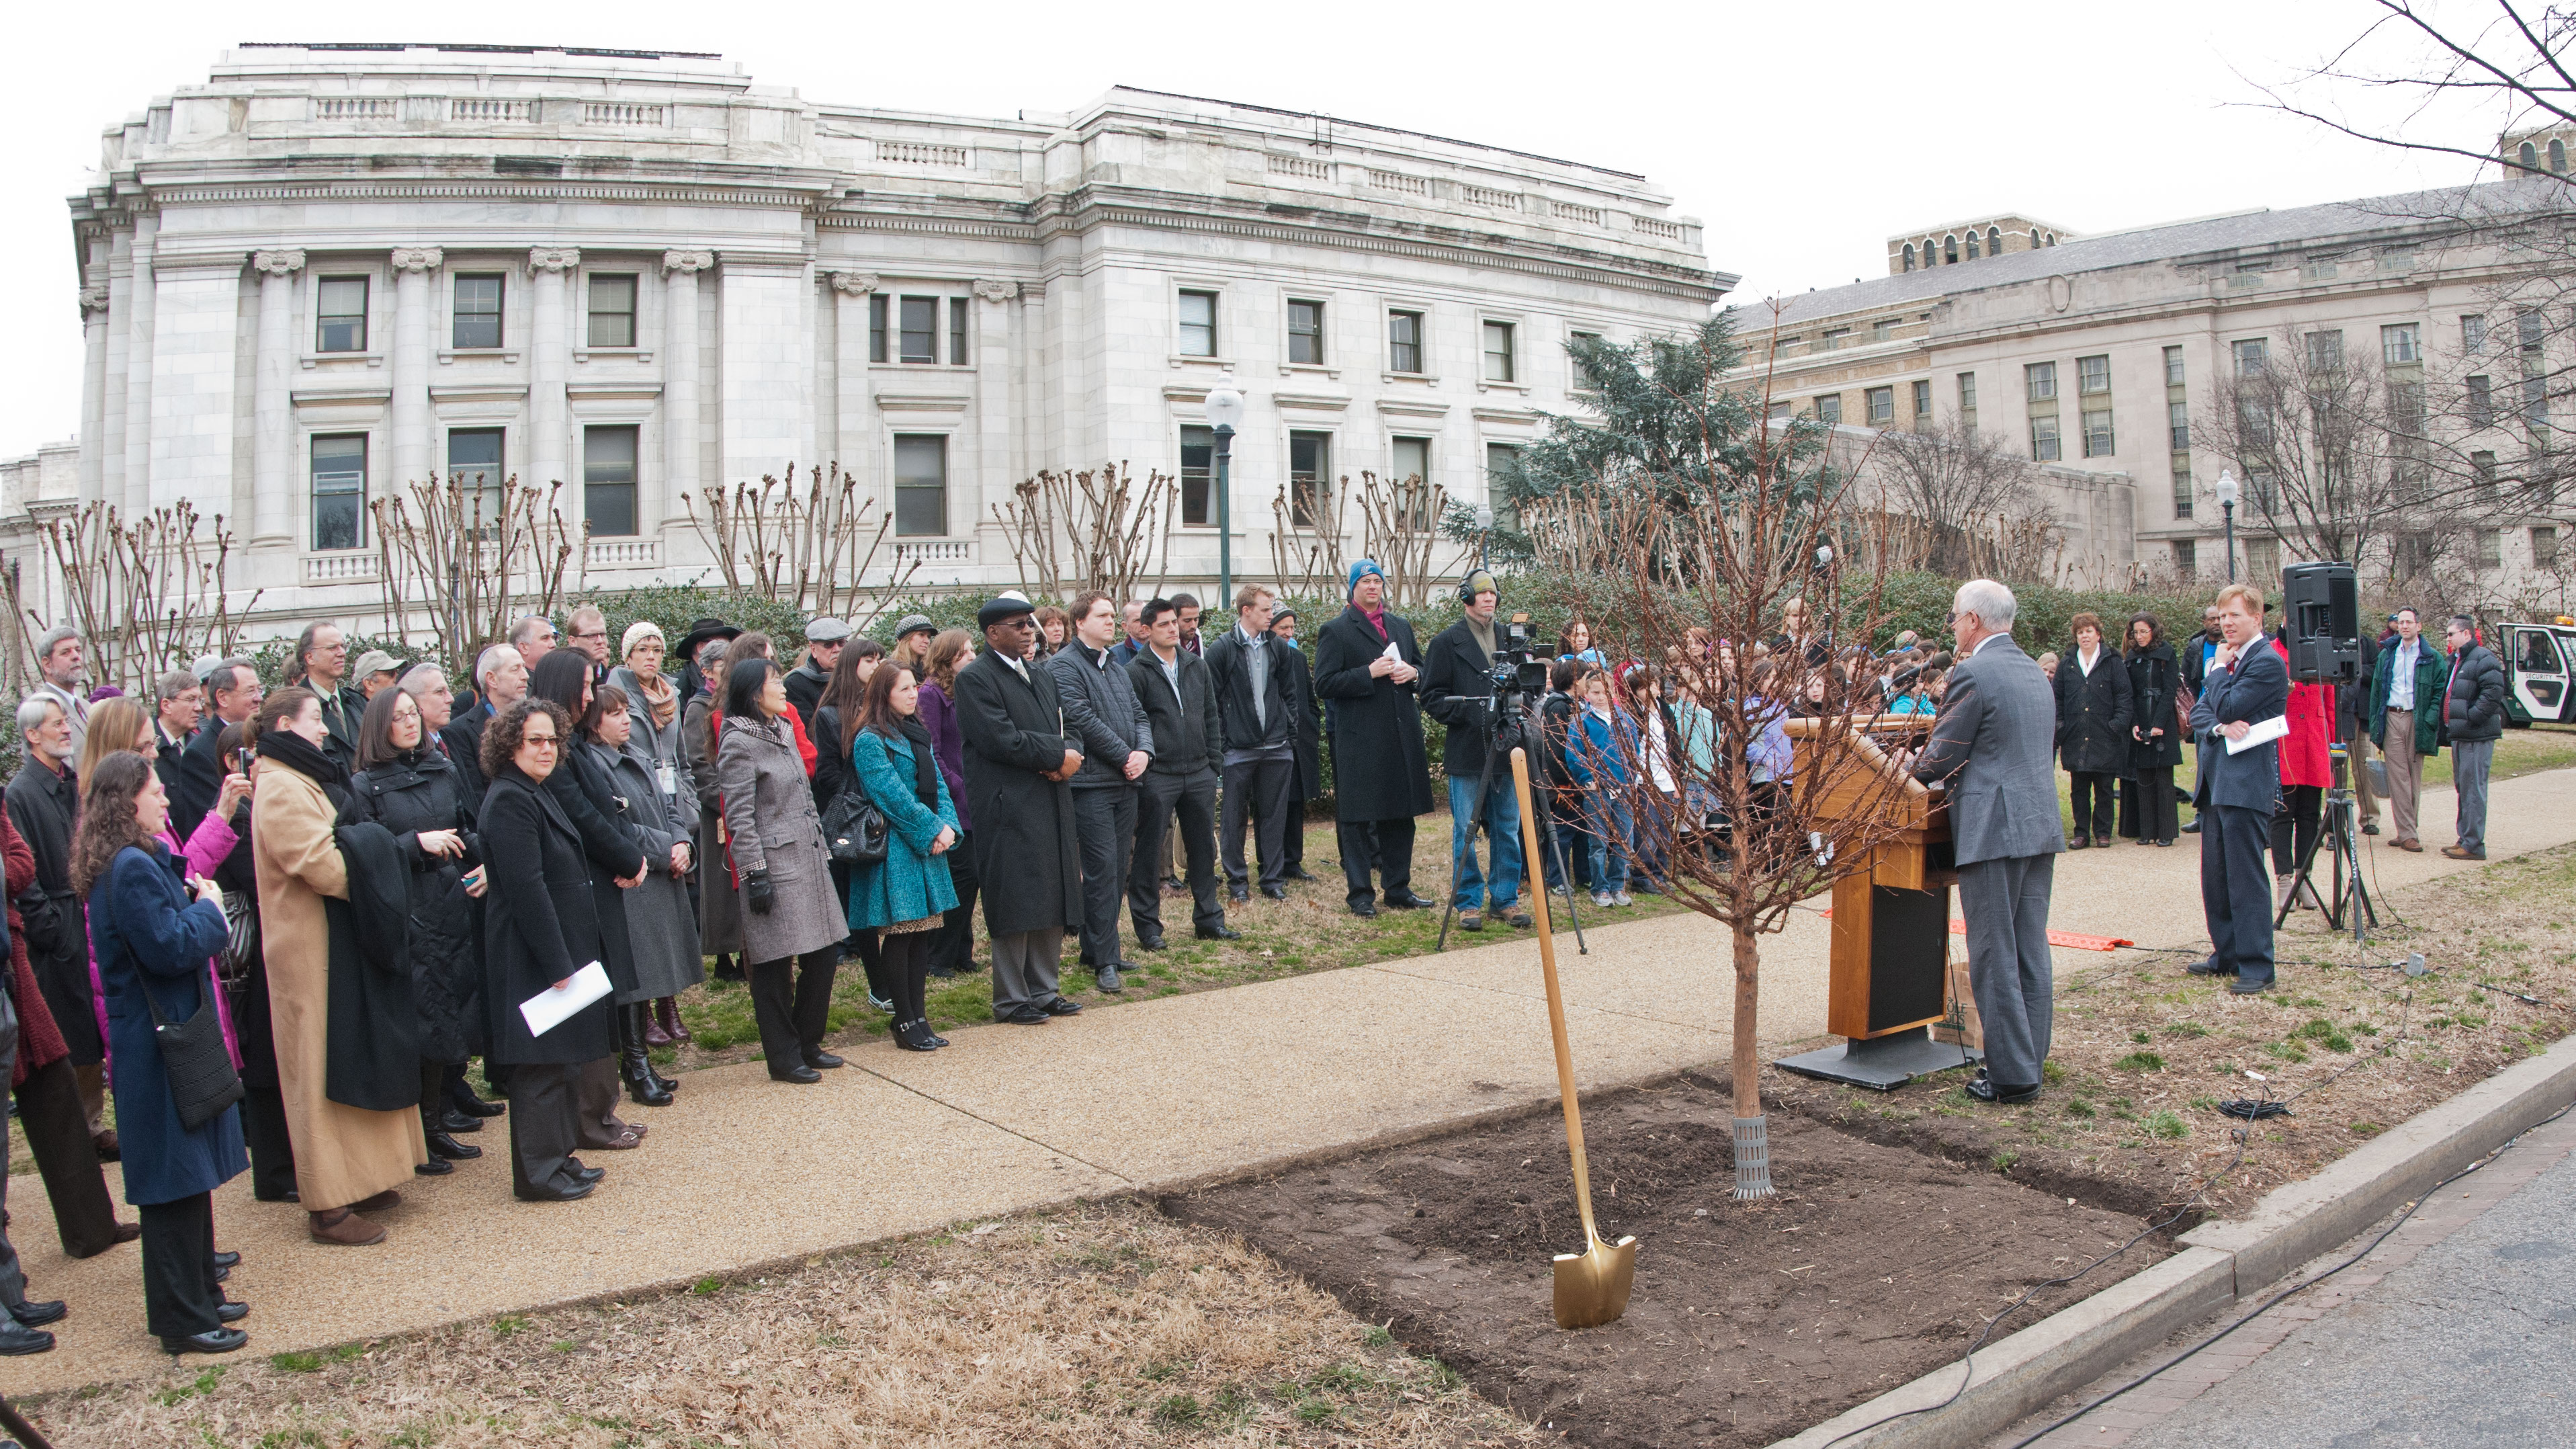 USDA Under Secretary Harris Sherman Speaks at a Ceremony for Tu B'Shevat